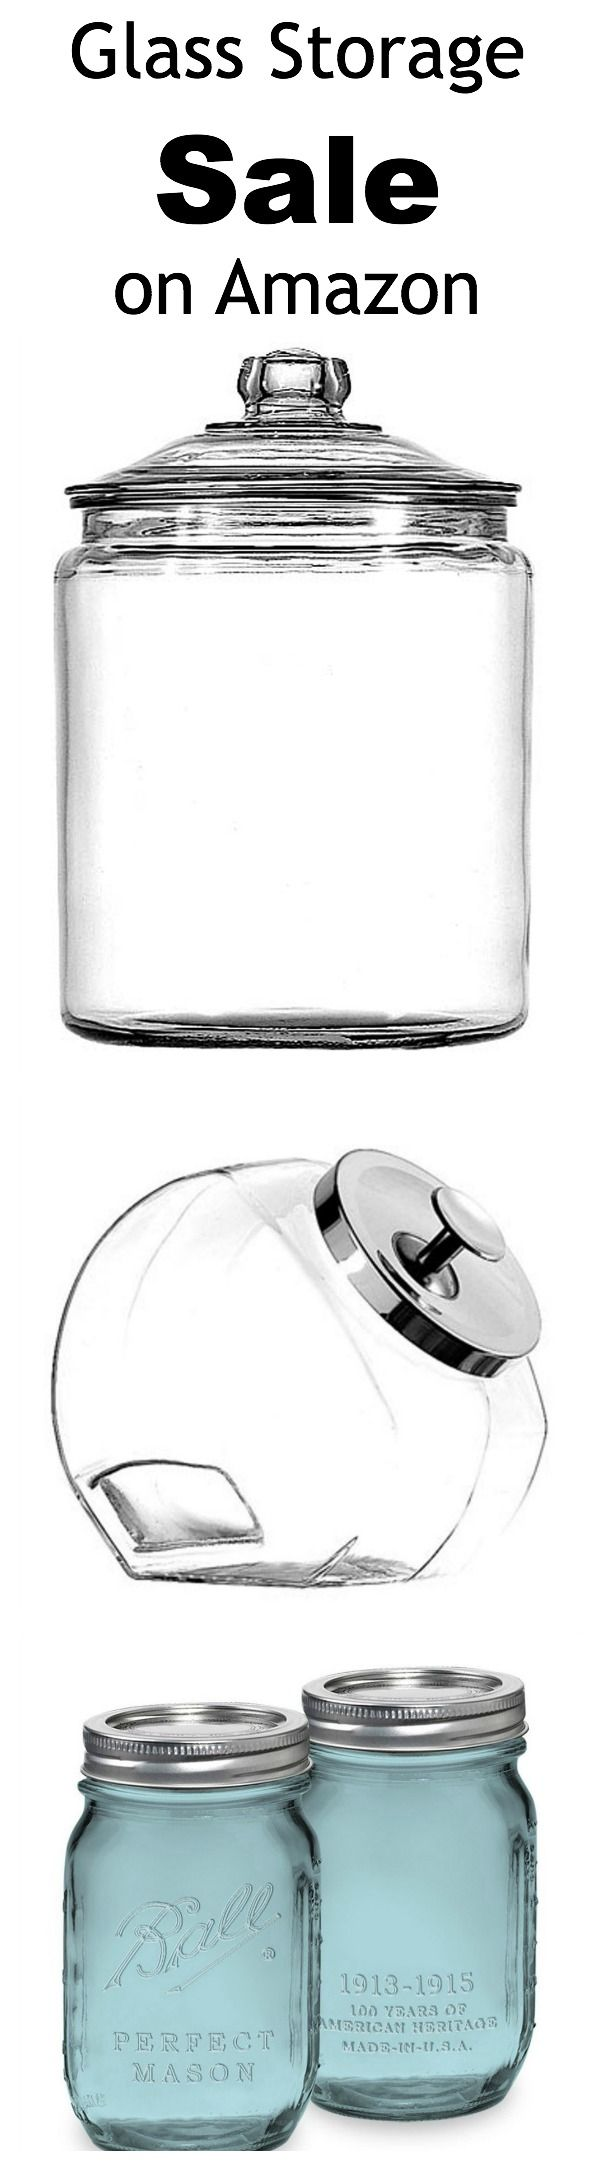 Awesome glass storage sale on Amazon. Perfect, beautiful and affordable for any room of the house. #organization